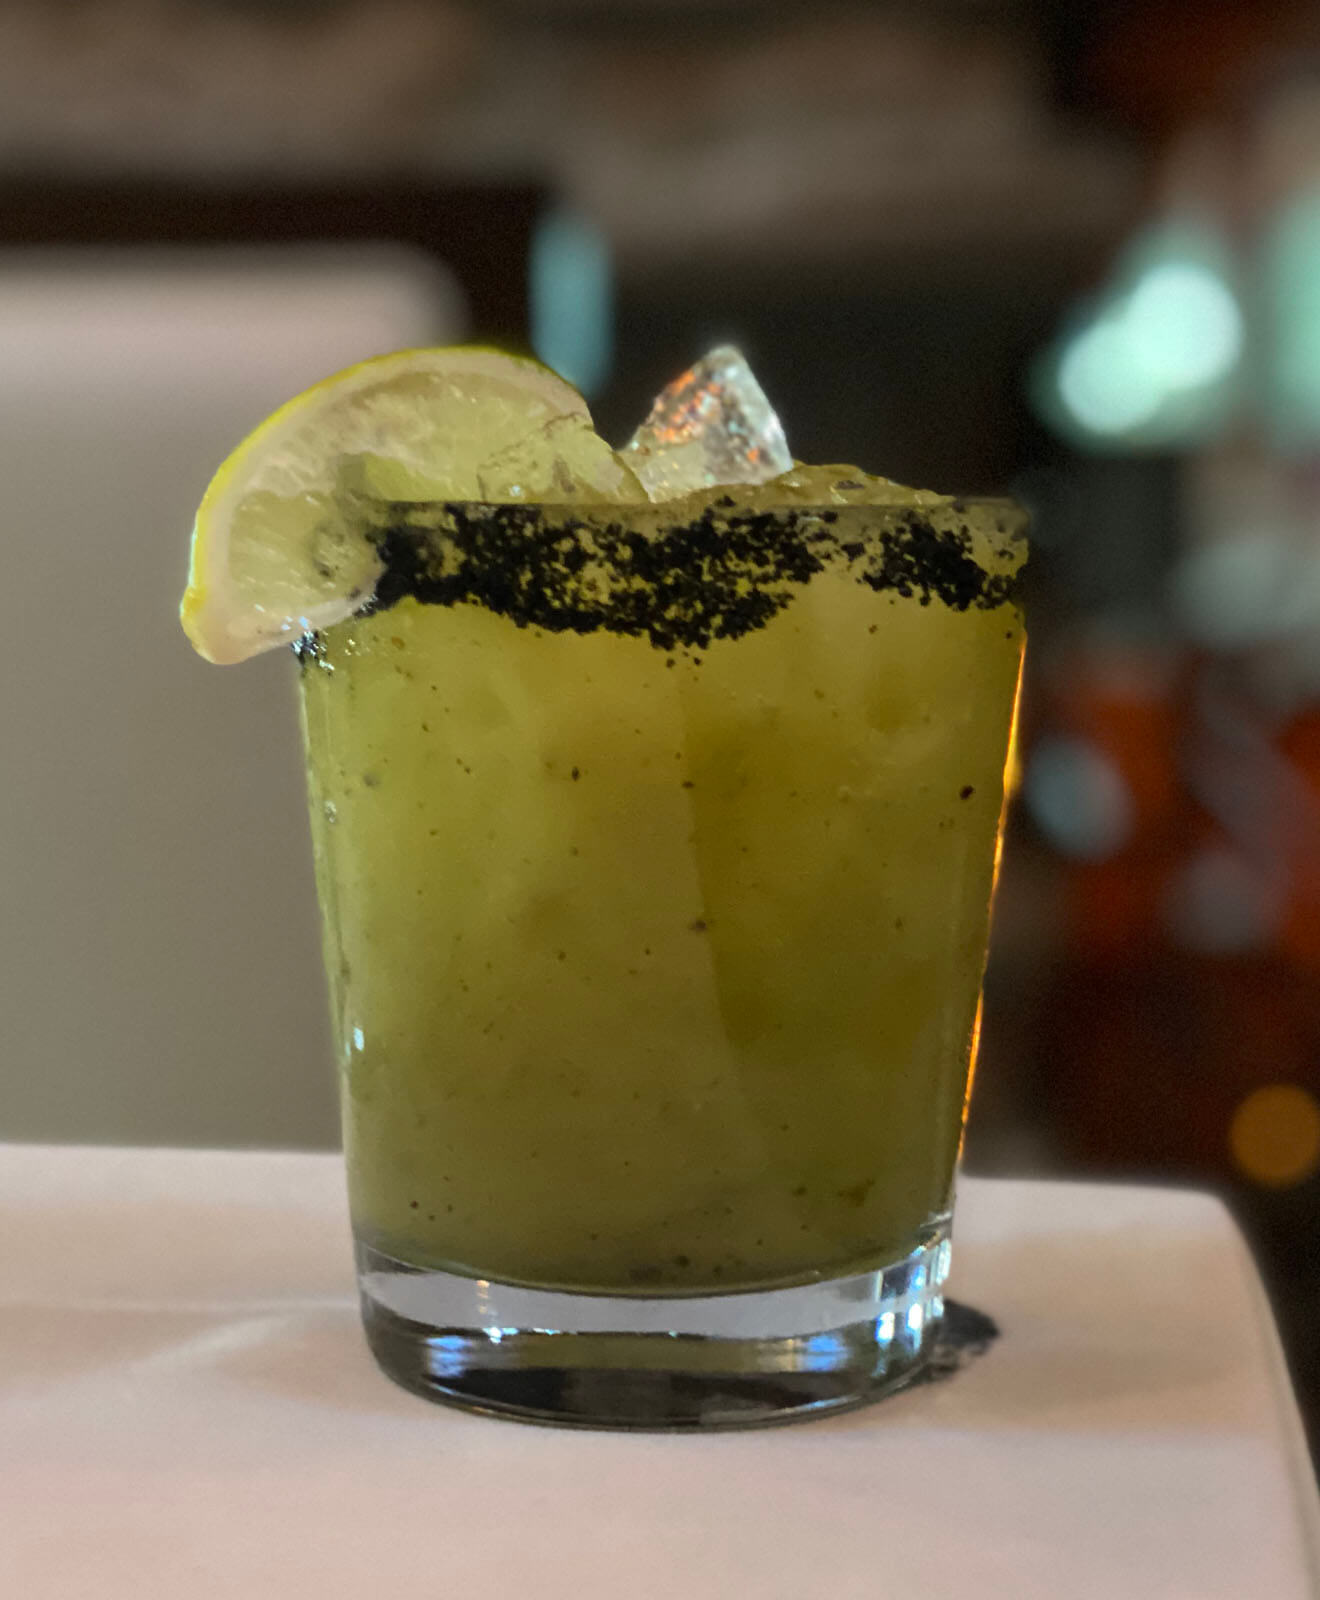 Smoked Jalapeno and Kiwi Margarita